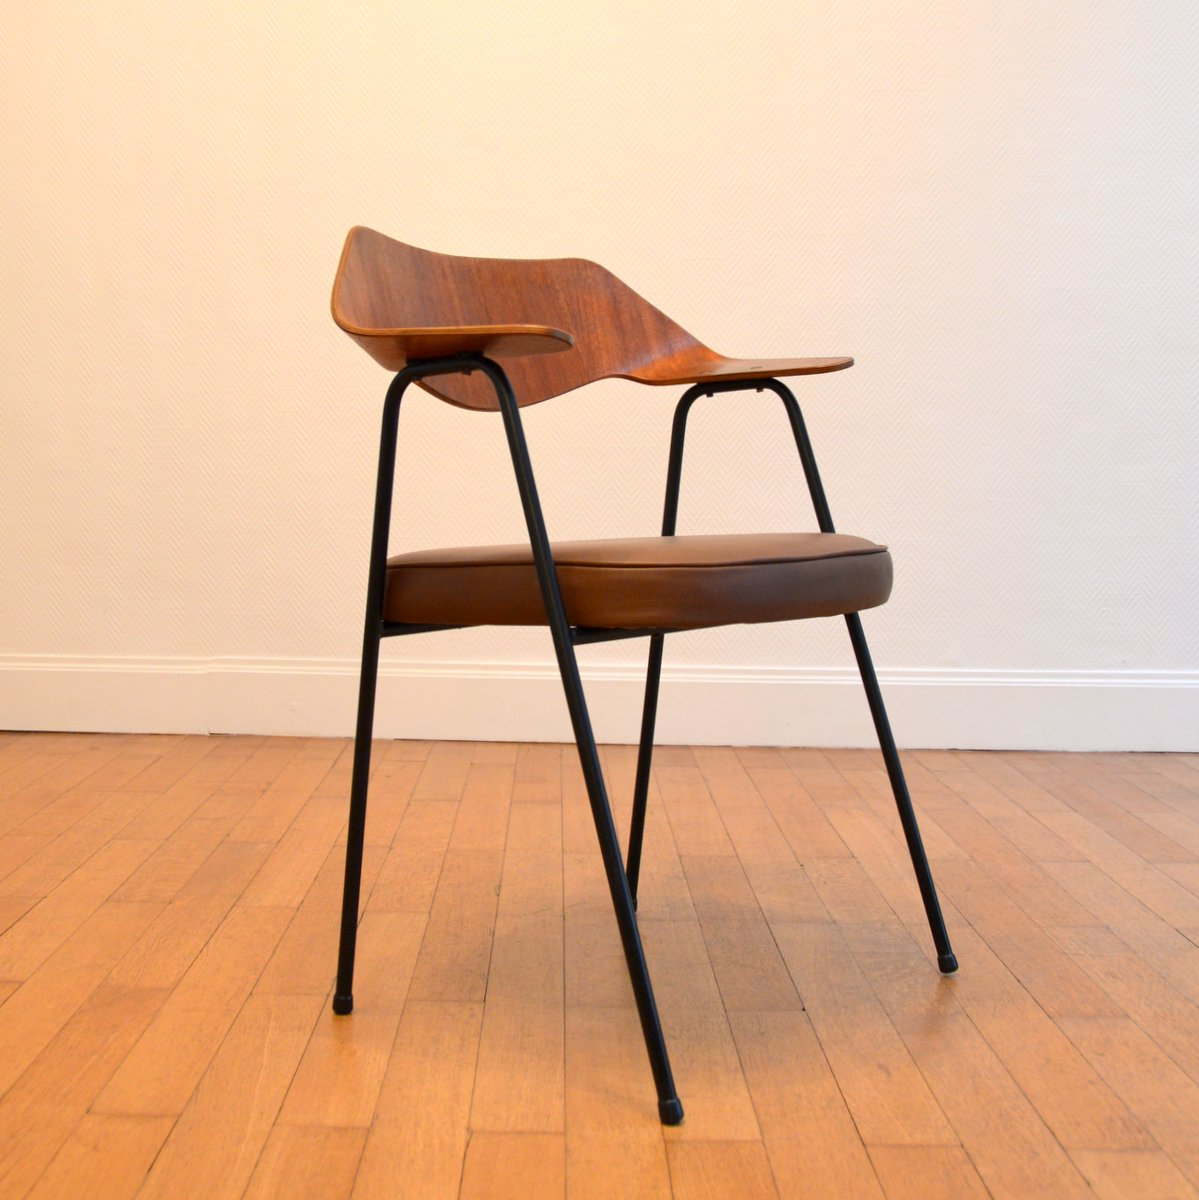 Rare Fauteuil Robin Day Pour Airborne 1955s